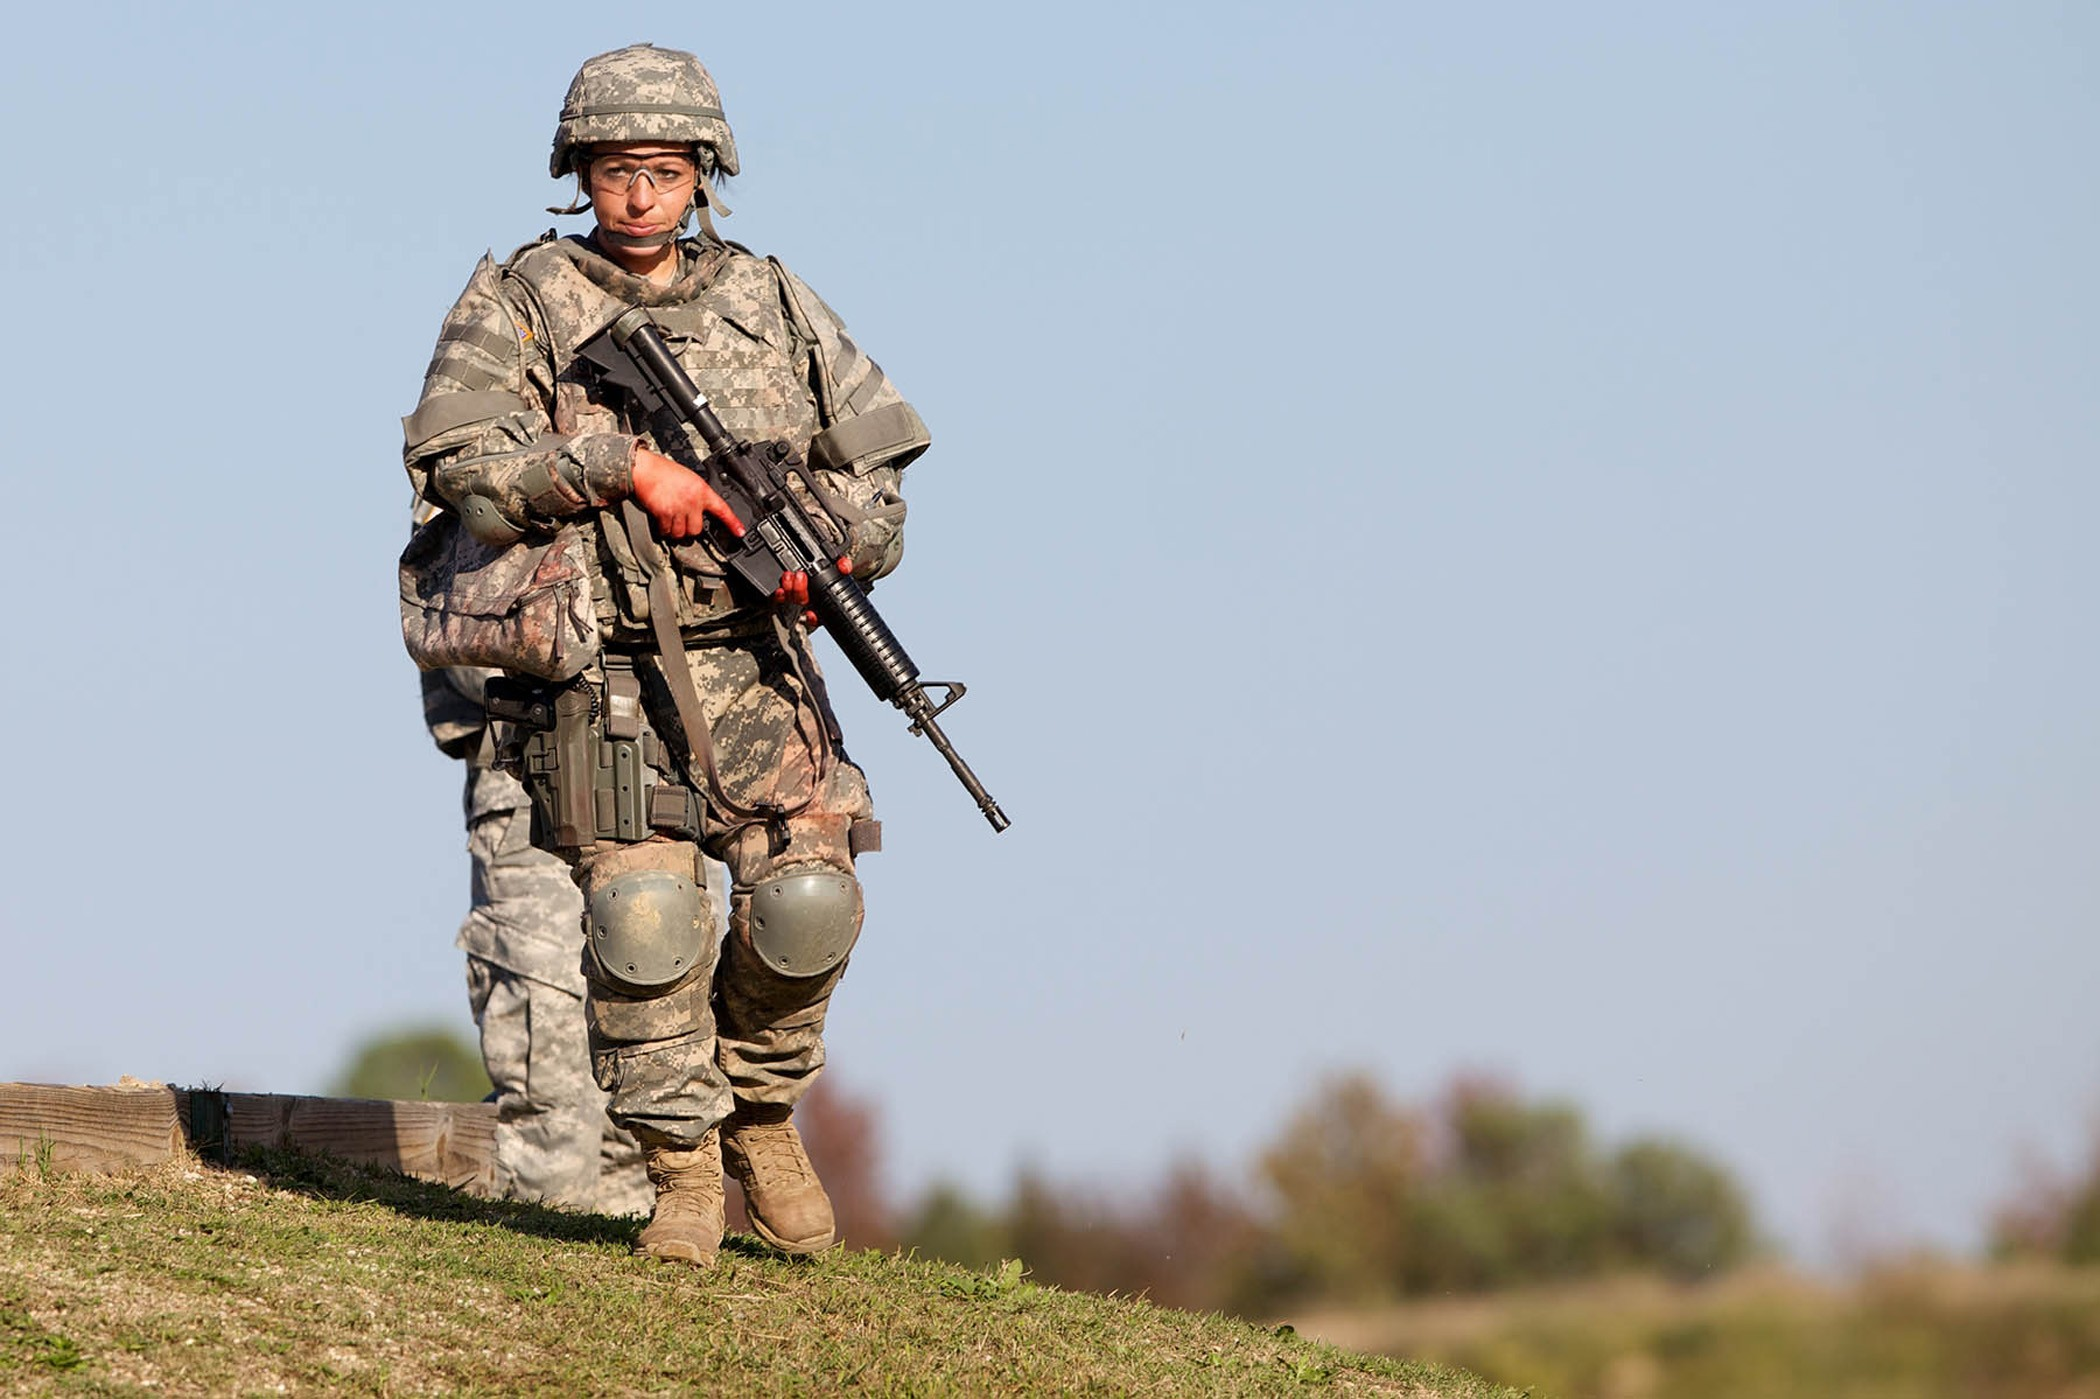 Army women honor past, look to future | Article | The ...